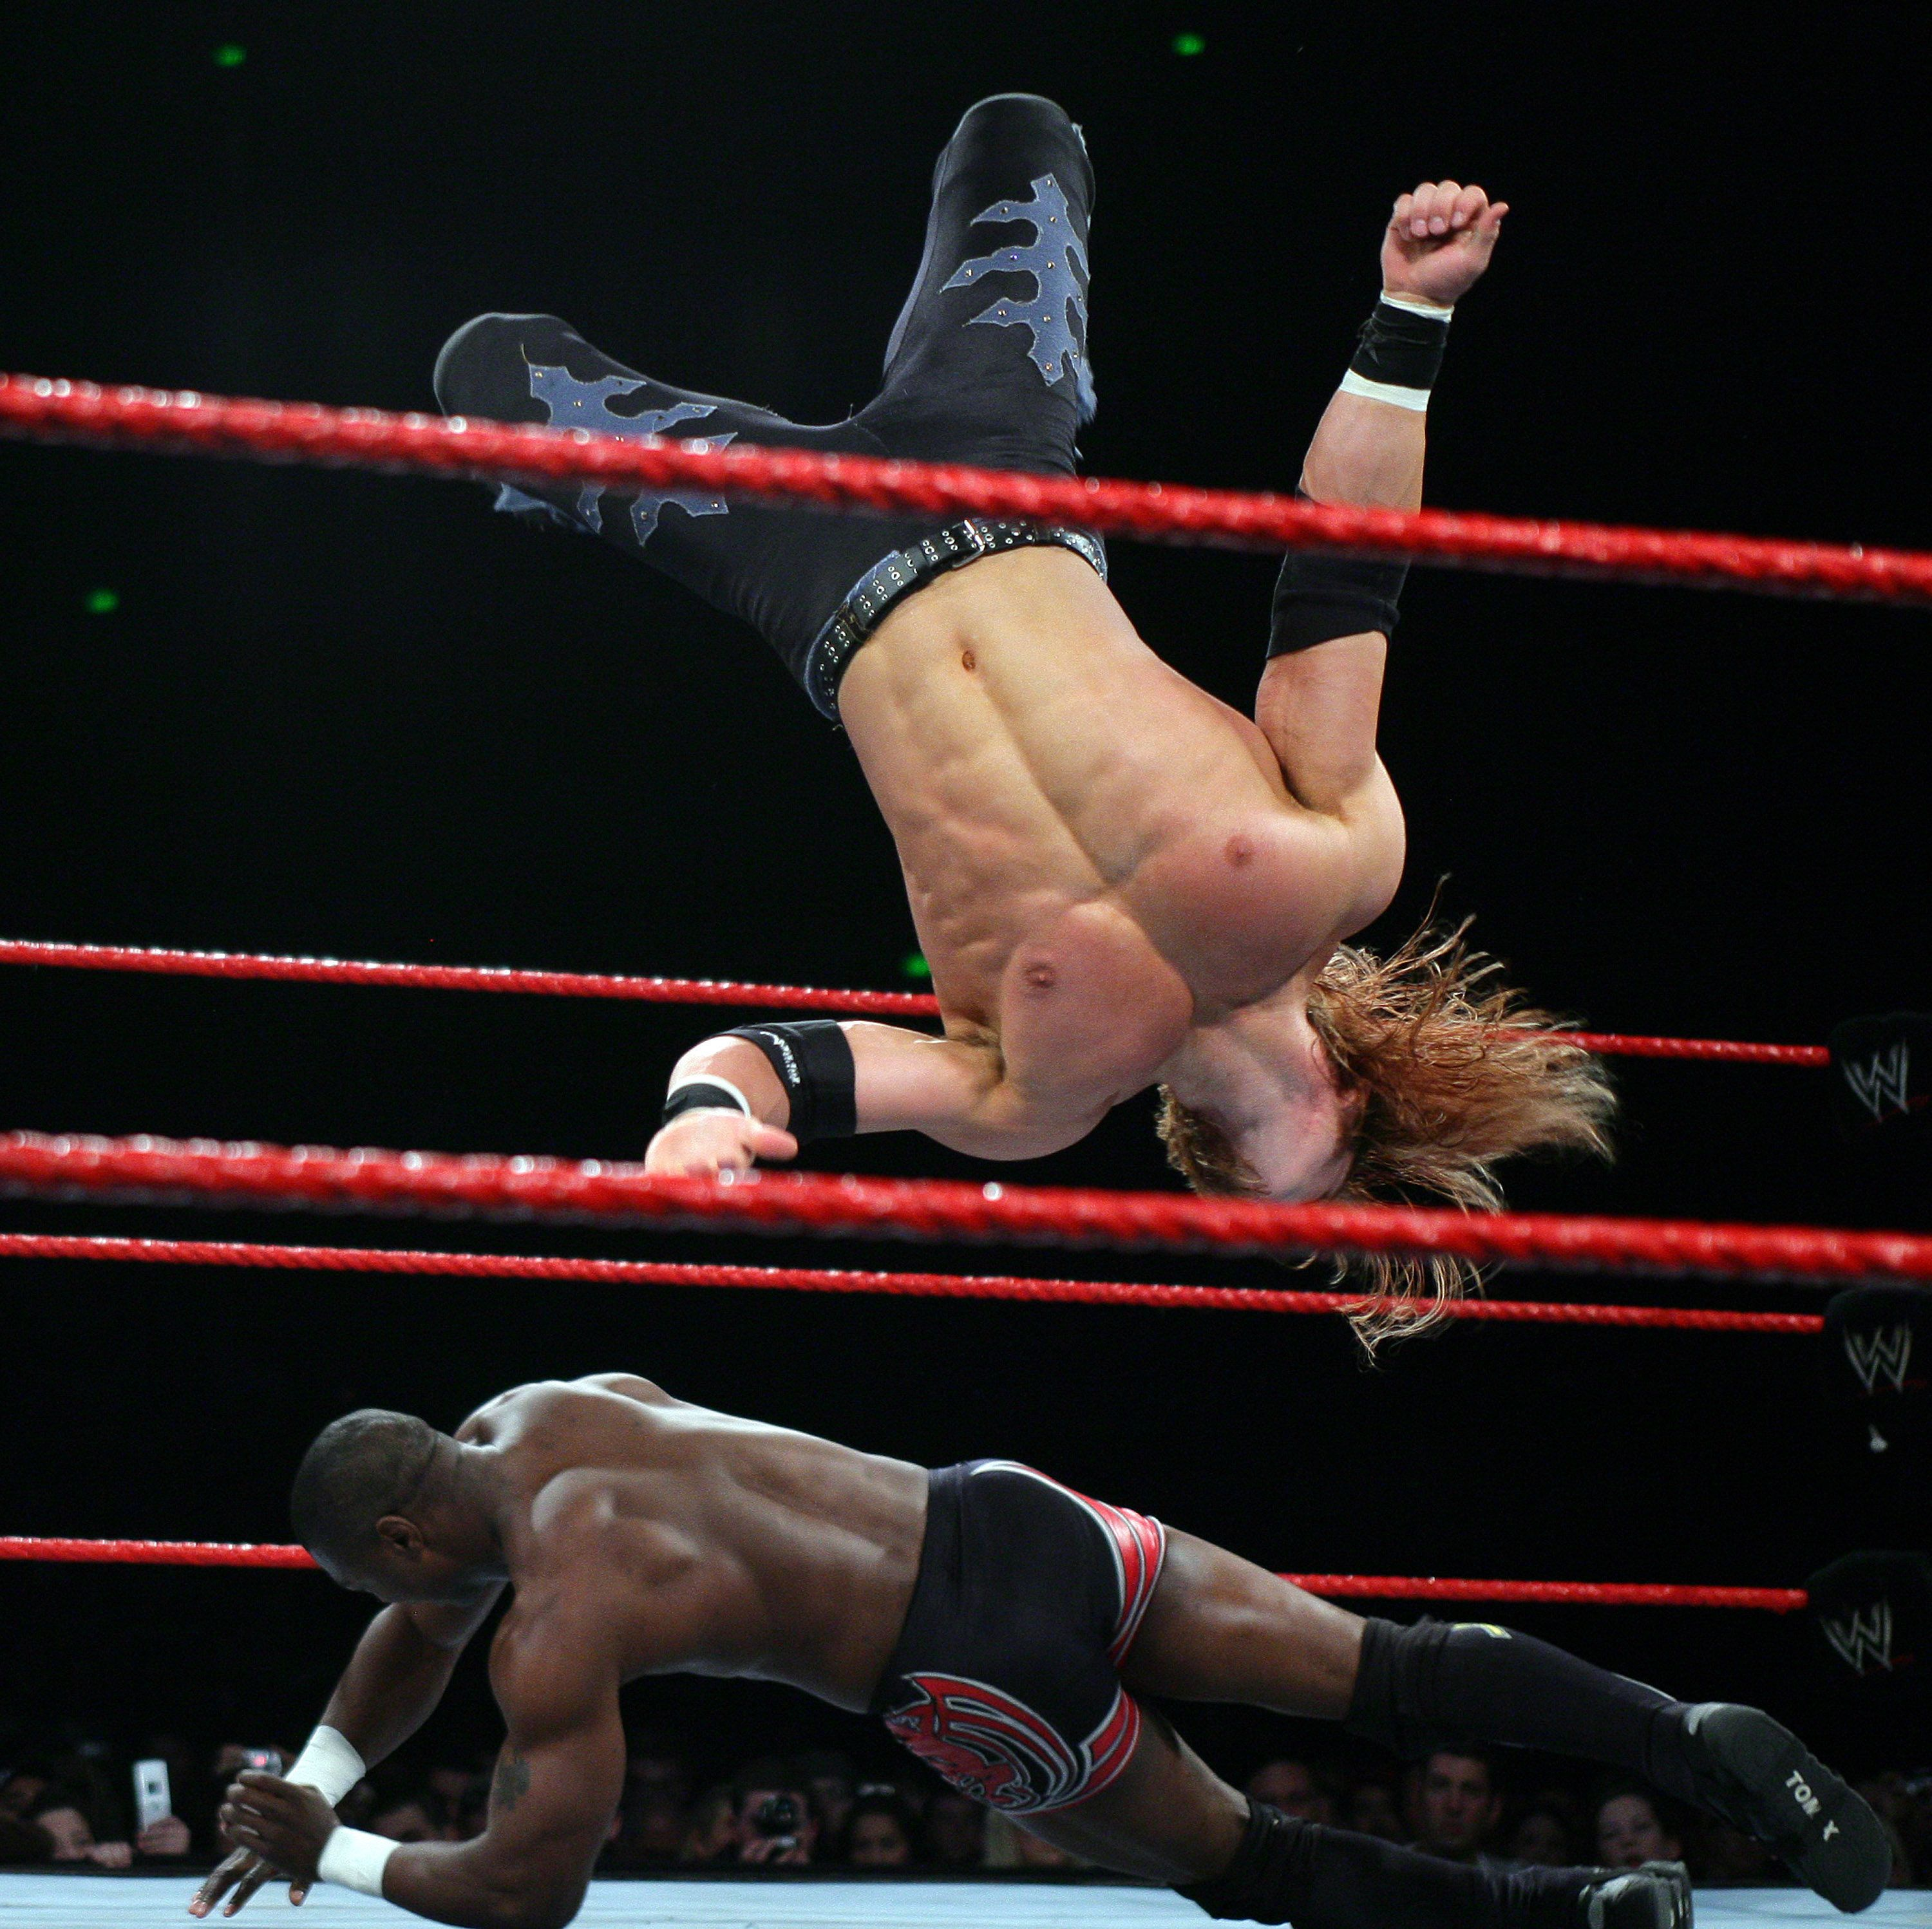 Shelton Benjamin scrambles to evade a Johnny Nitro body slam during the WWE RAW Superslam event at Acer Arena, Homebush stadium on august 4, 2006. (Photo by Don Arnold/WireImage)